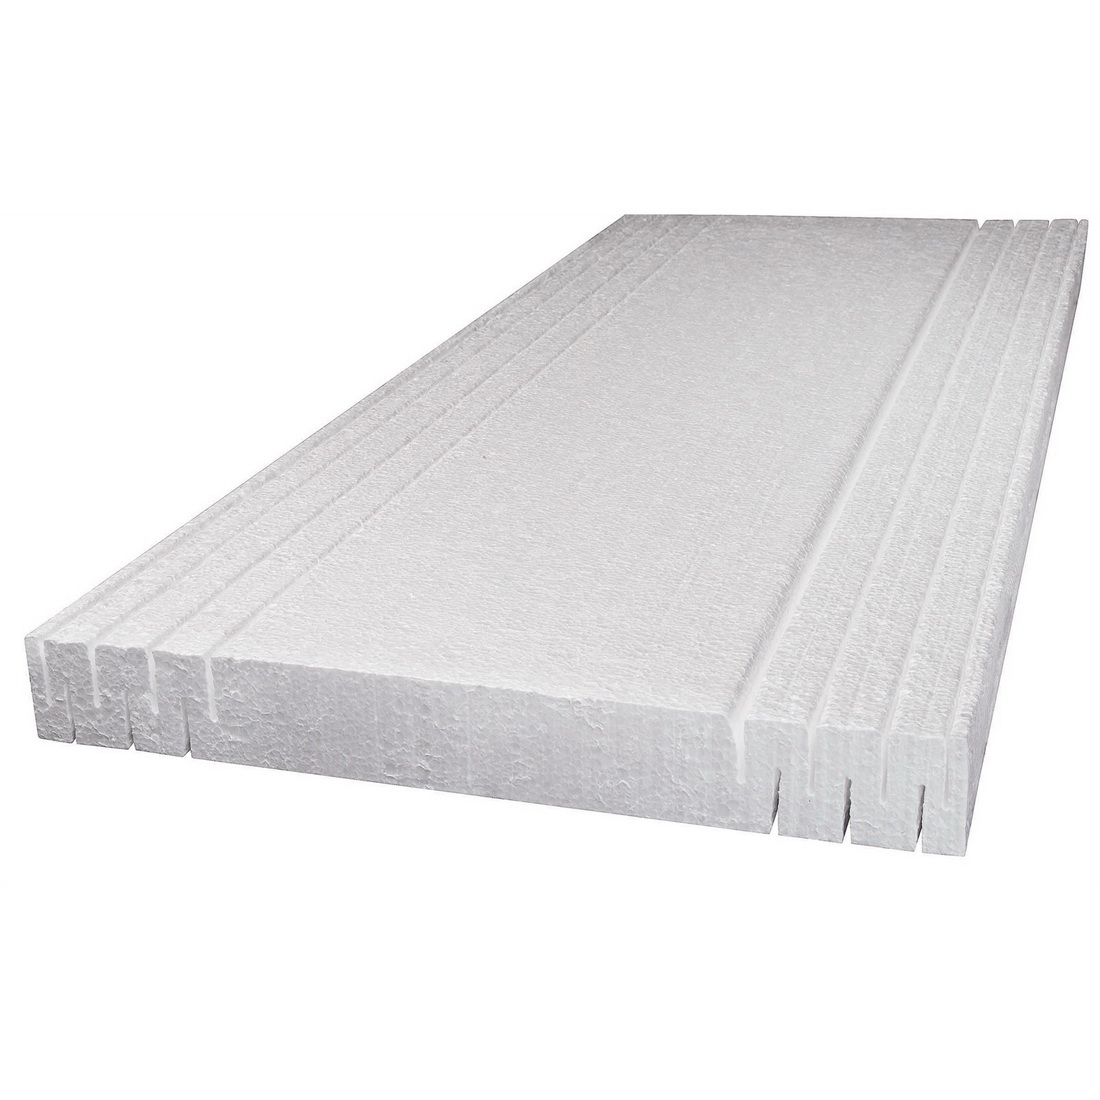 Expol Under Floor Insulation 1200 x 360 x 60 mm 5.18 sq-m White E60360